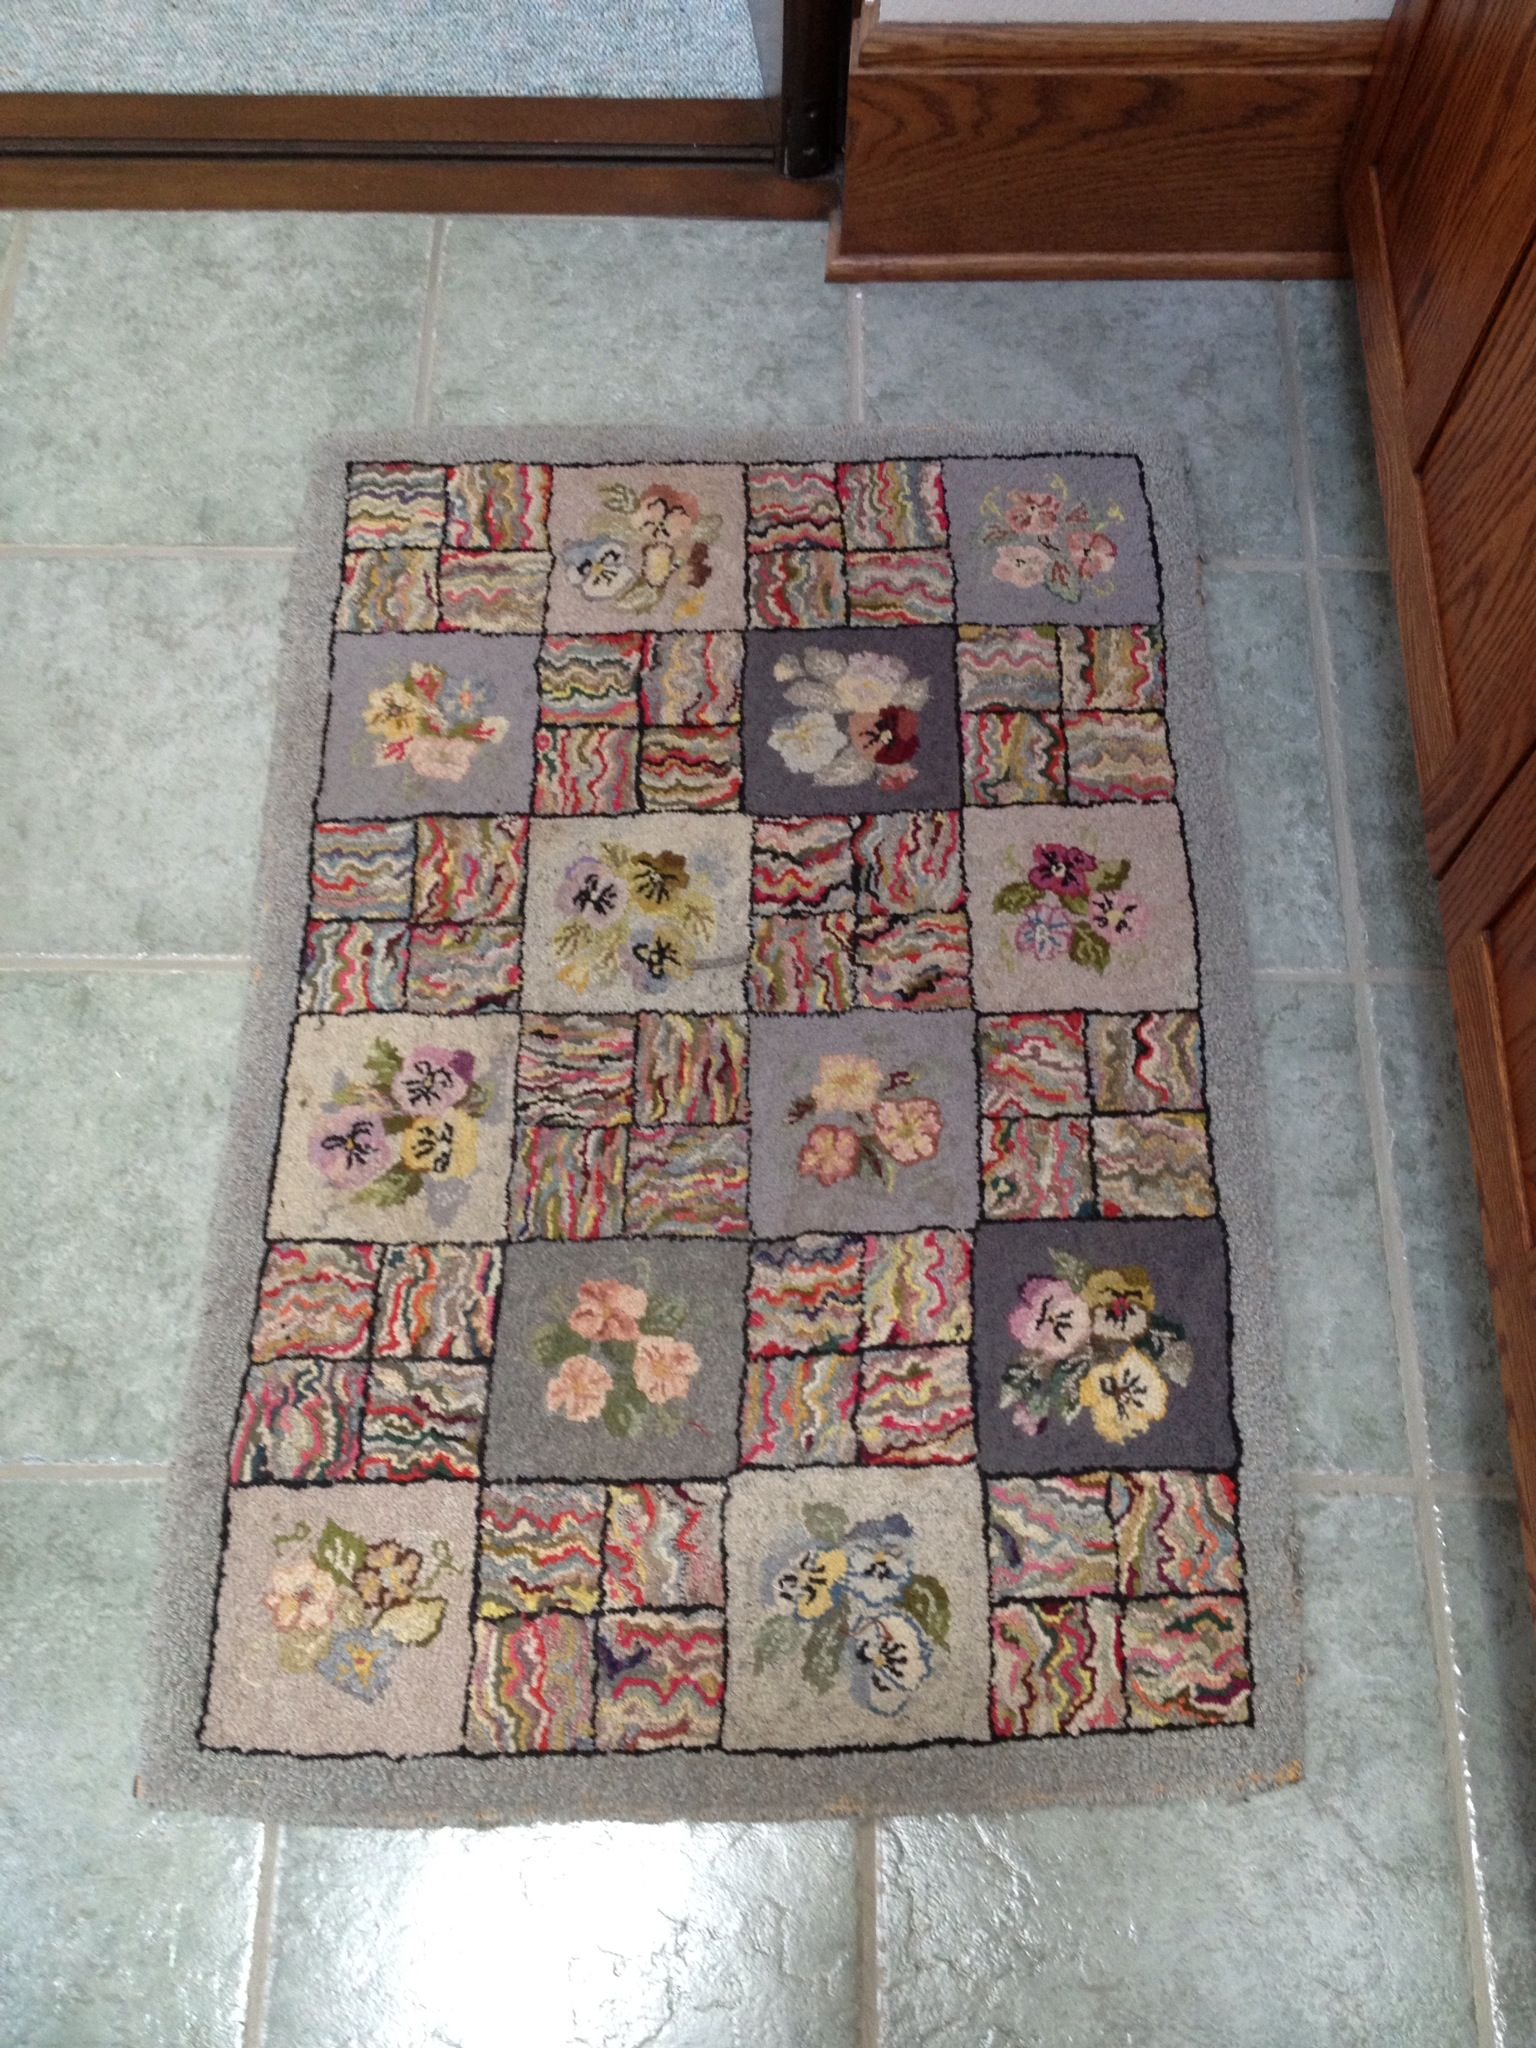 Antique hooked rug - love pansies AND hit and miss!